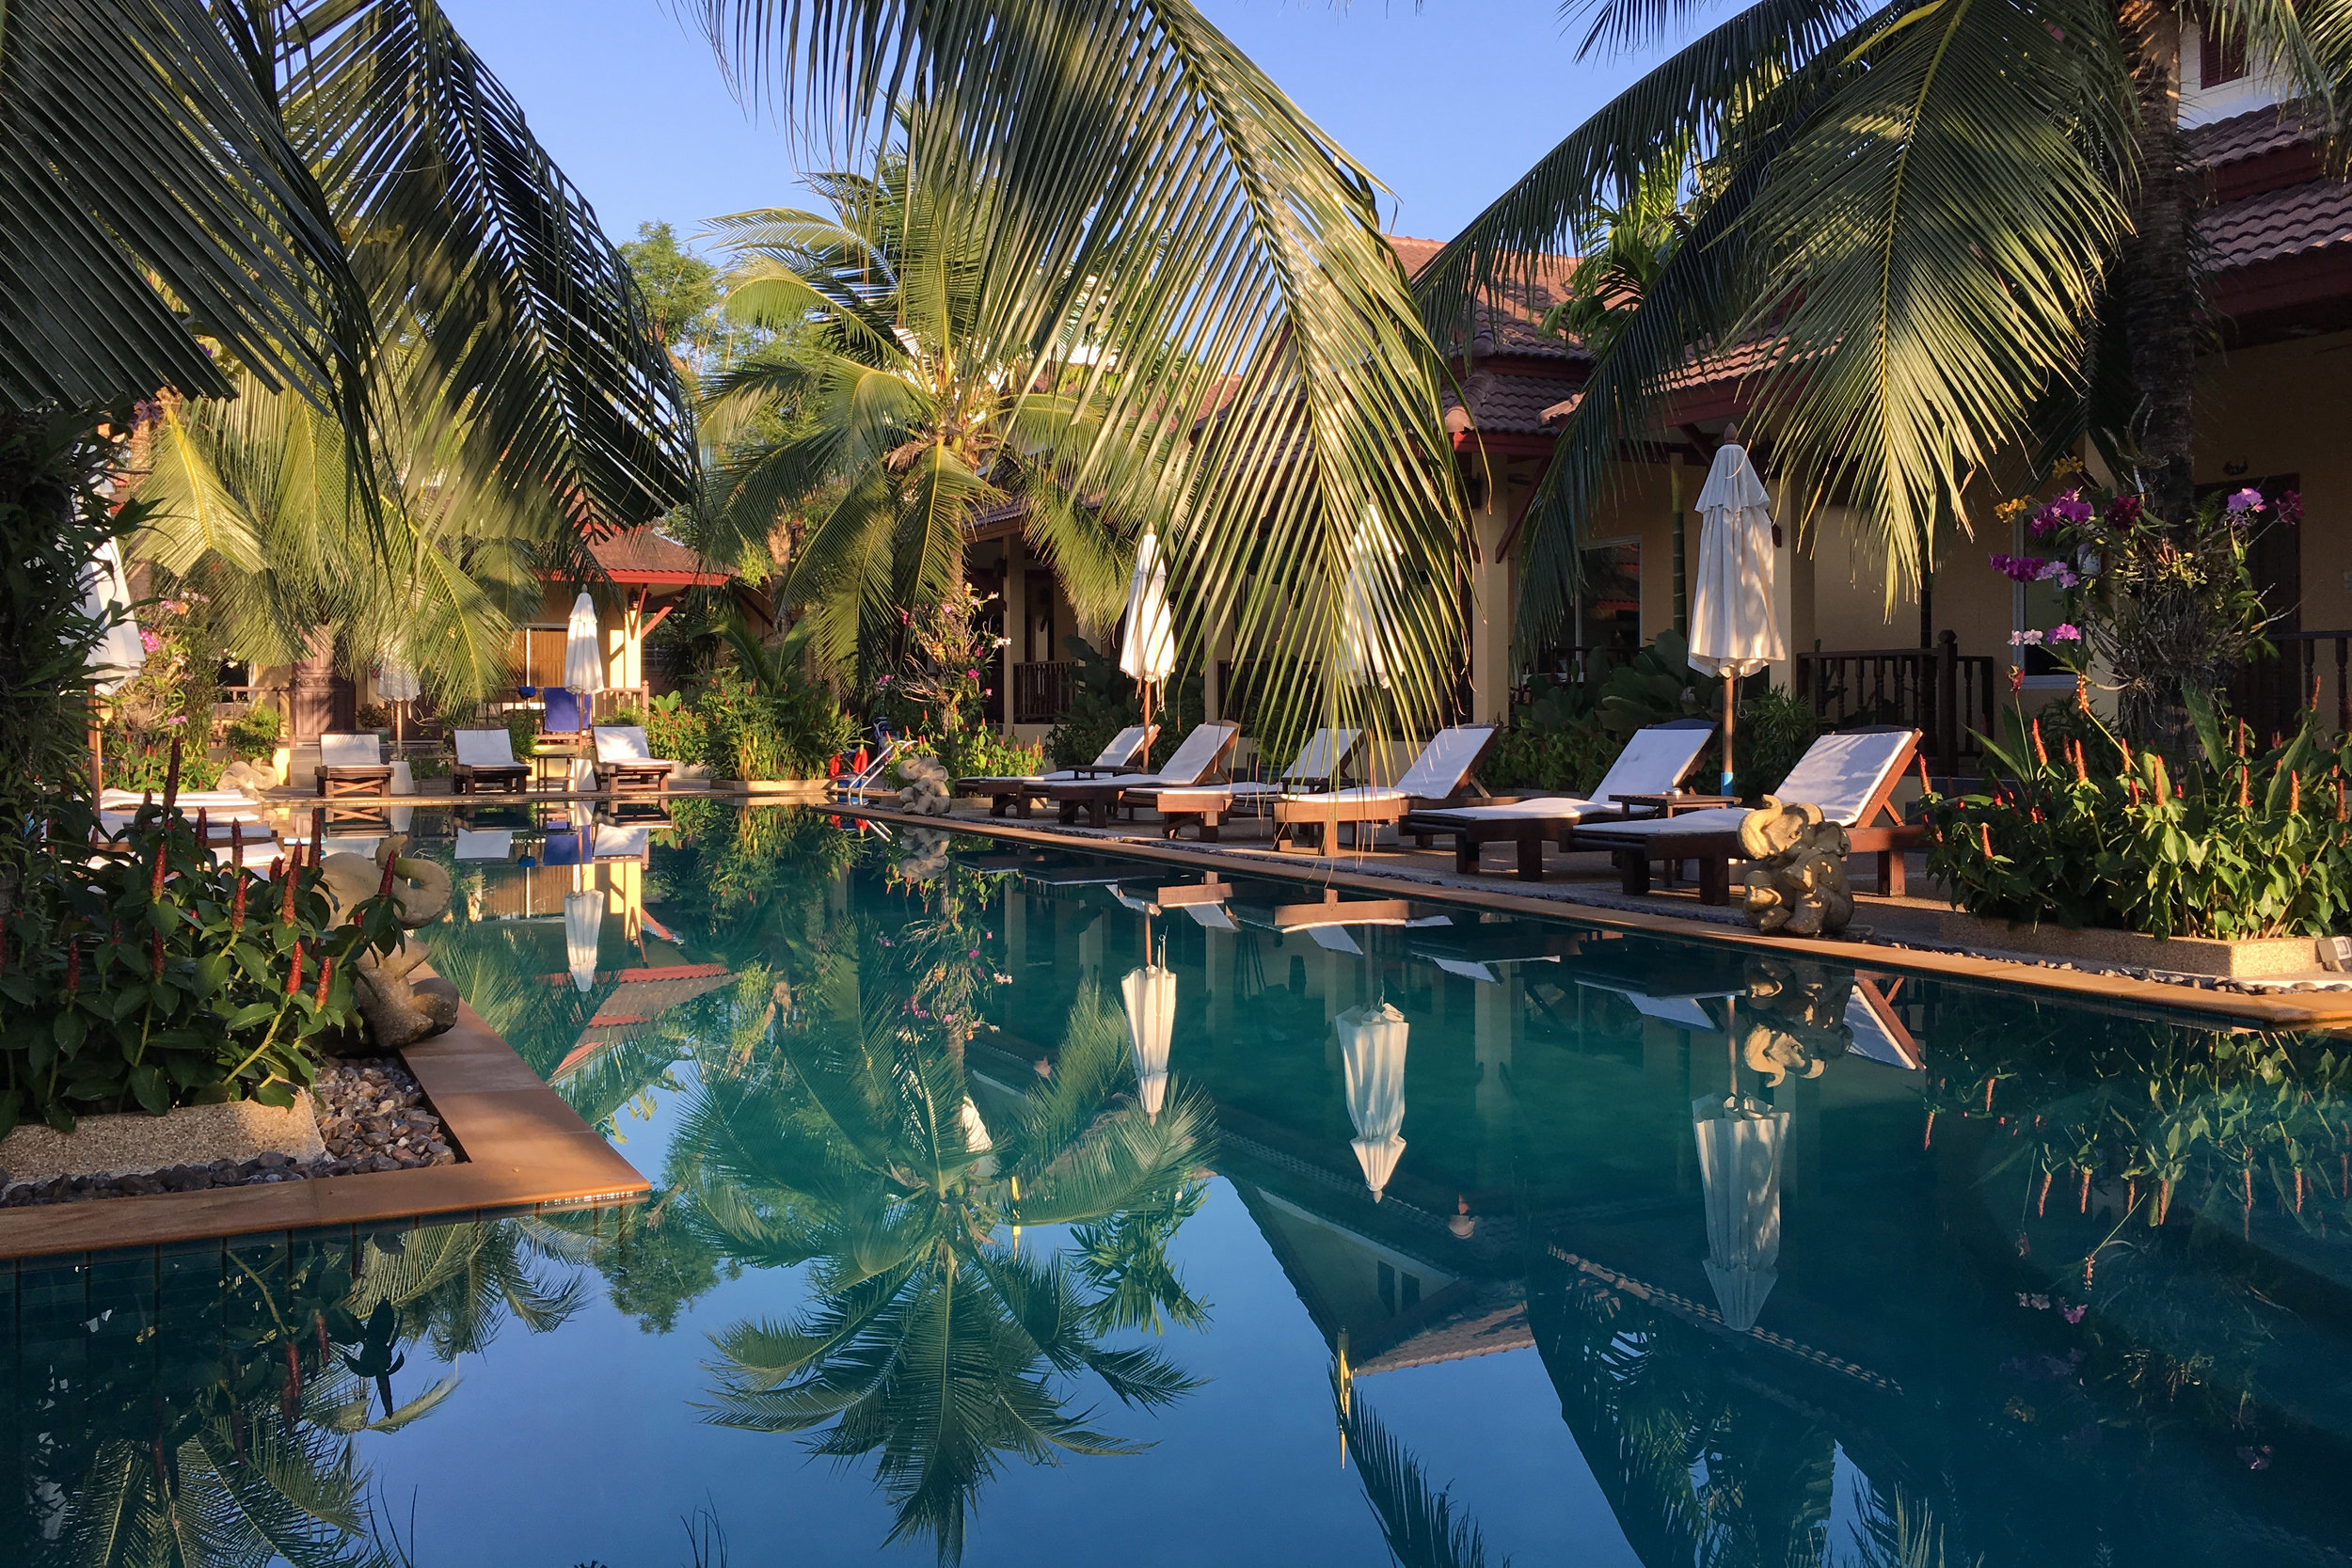 The pool area at Le Piman Resort in Phuket Thailand. A nice option for a morning swim or to hang out with a book after a long day at the beach.